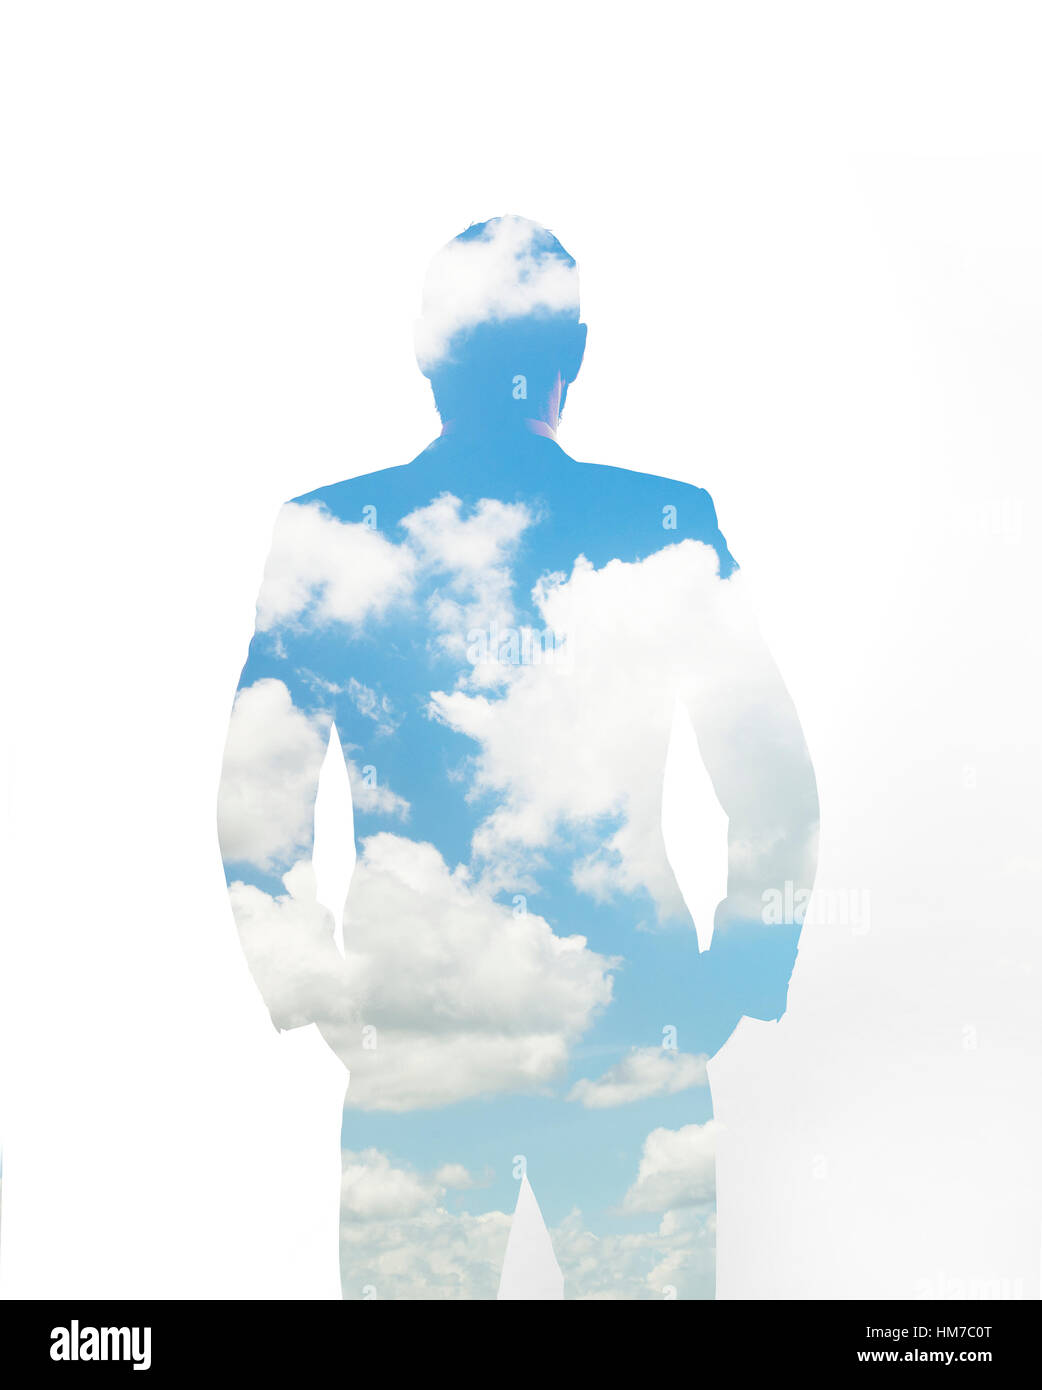 Composite image of clouds and silhouette of man - Stock Image